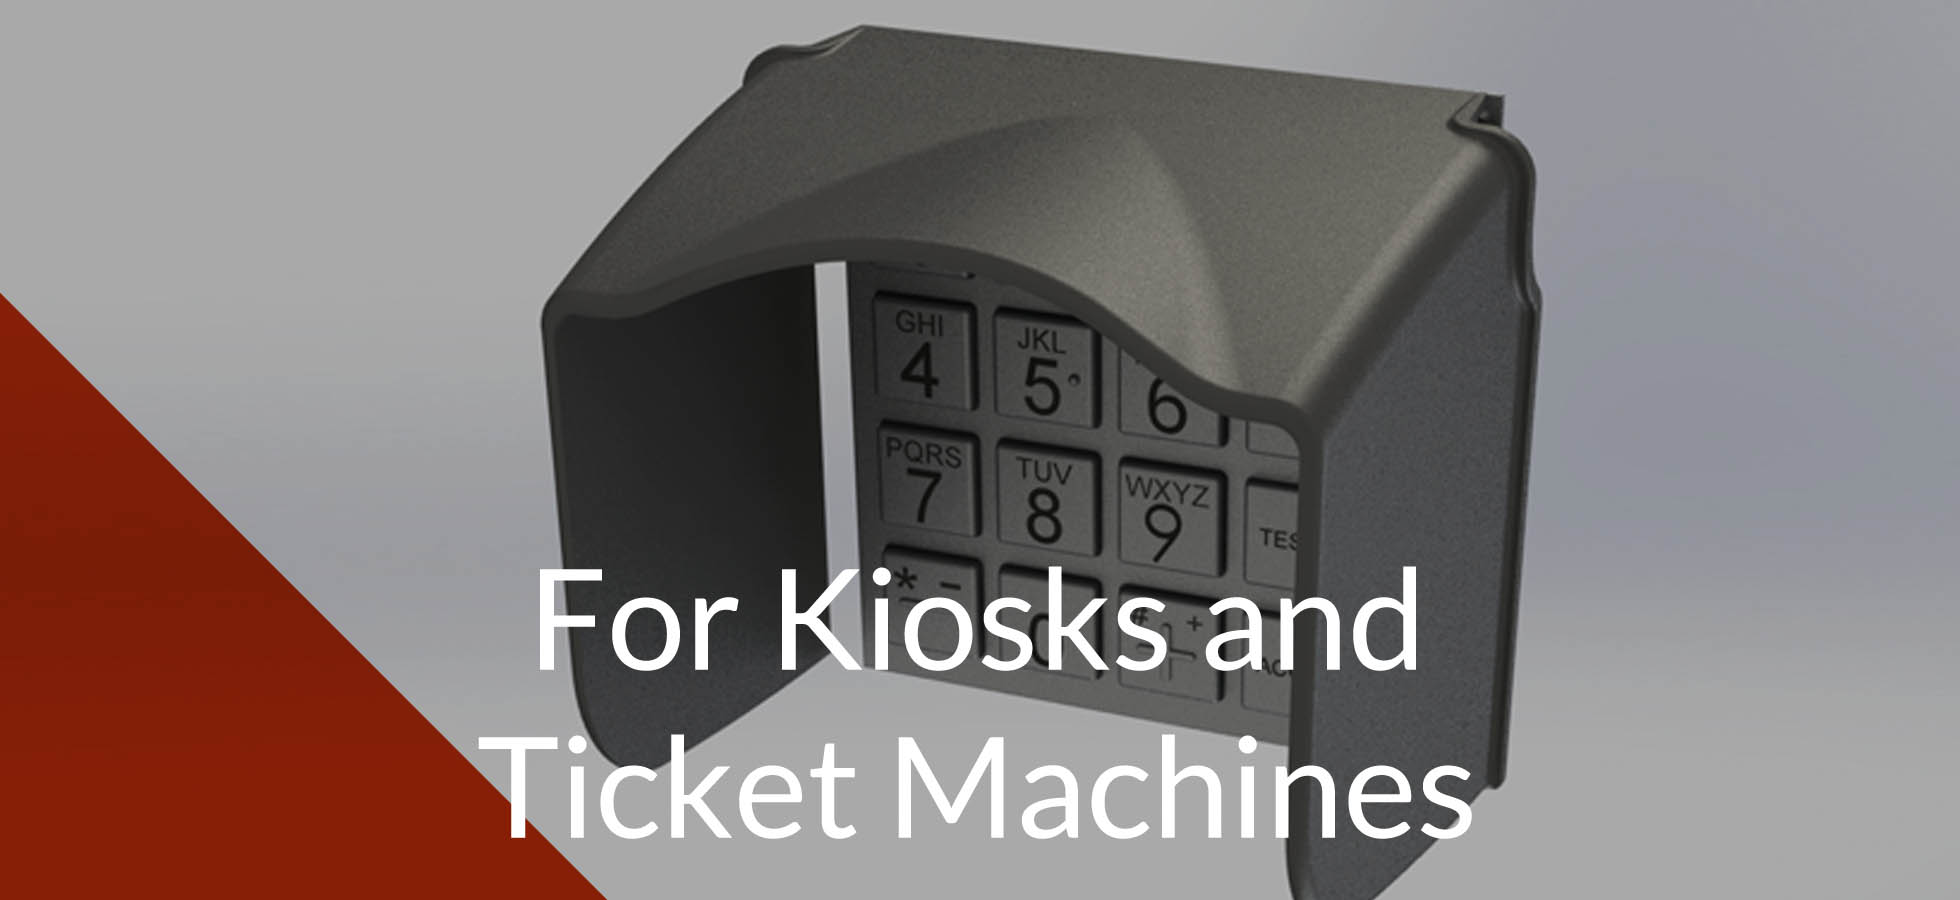 Pin shields for kiosks and ticket machines